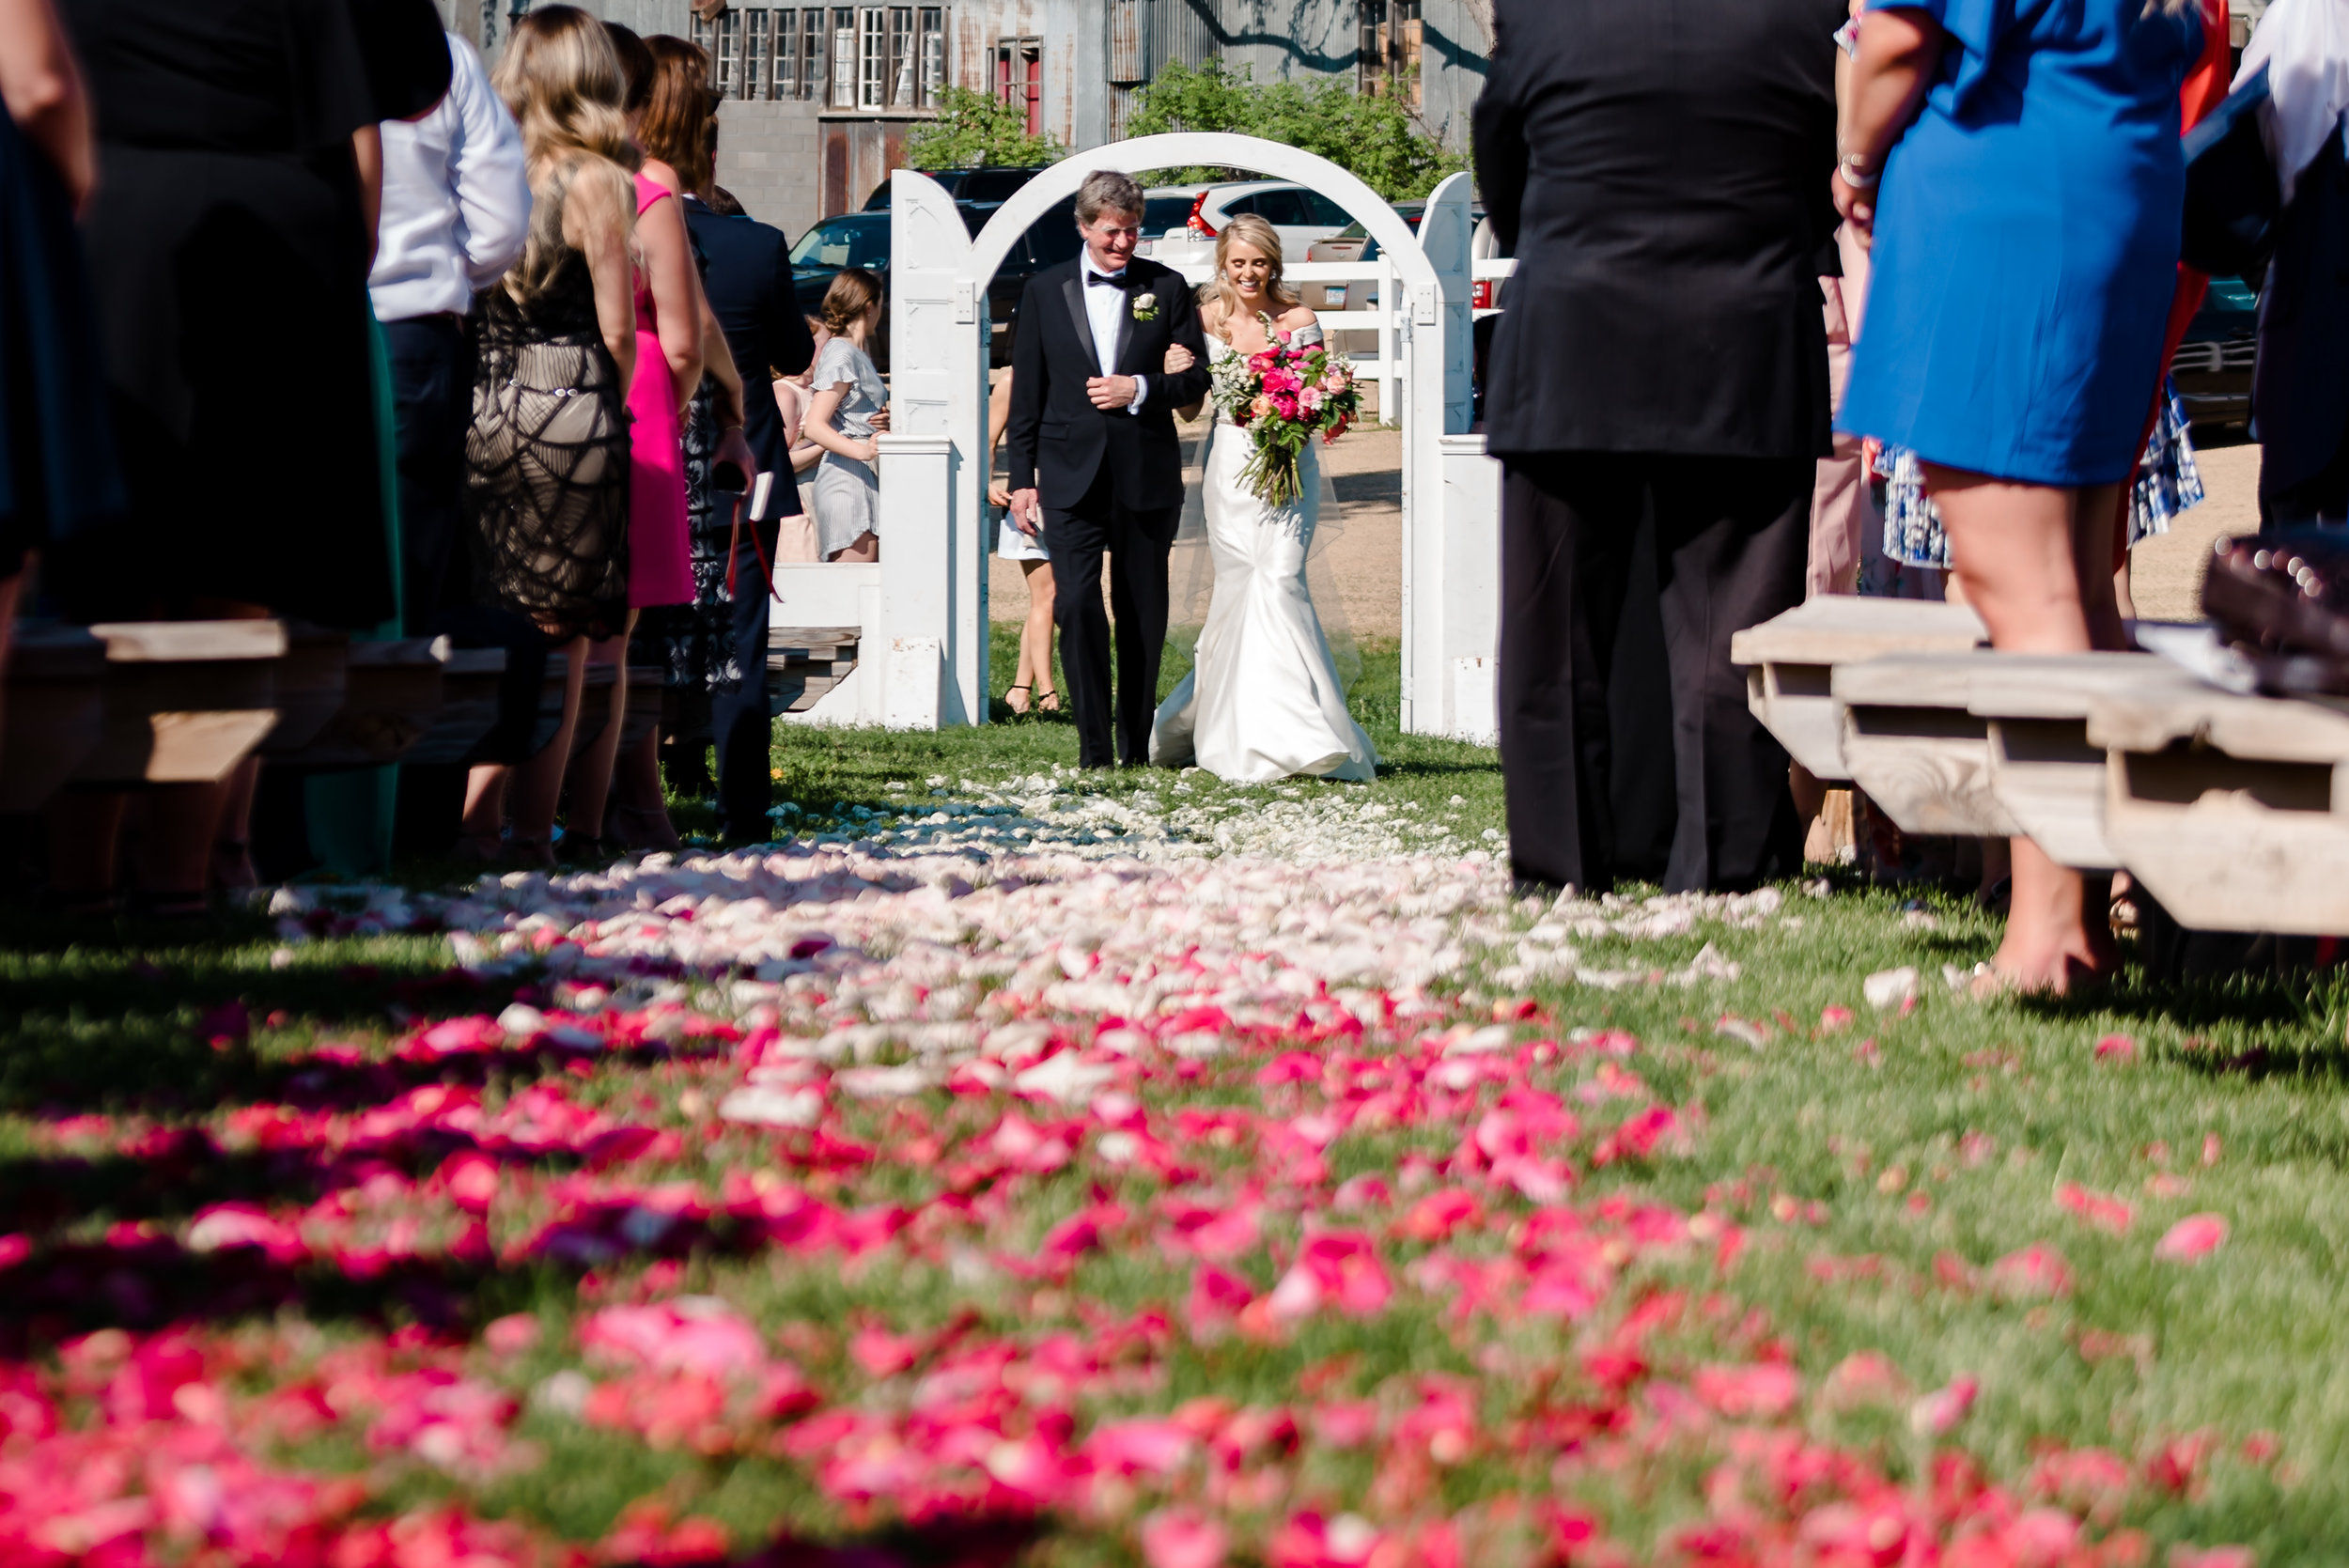 Outdoor Wedding Ceremony Site at Historic John P. Furber Farm Wedding Venue - Top Wedding Barn Venues in MN - Laura Robinson Photography